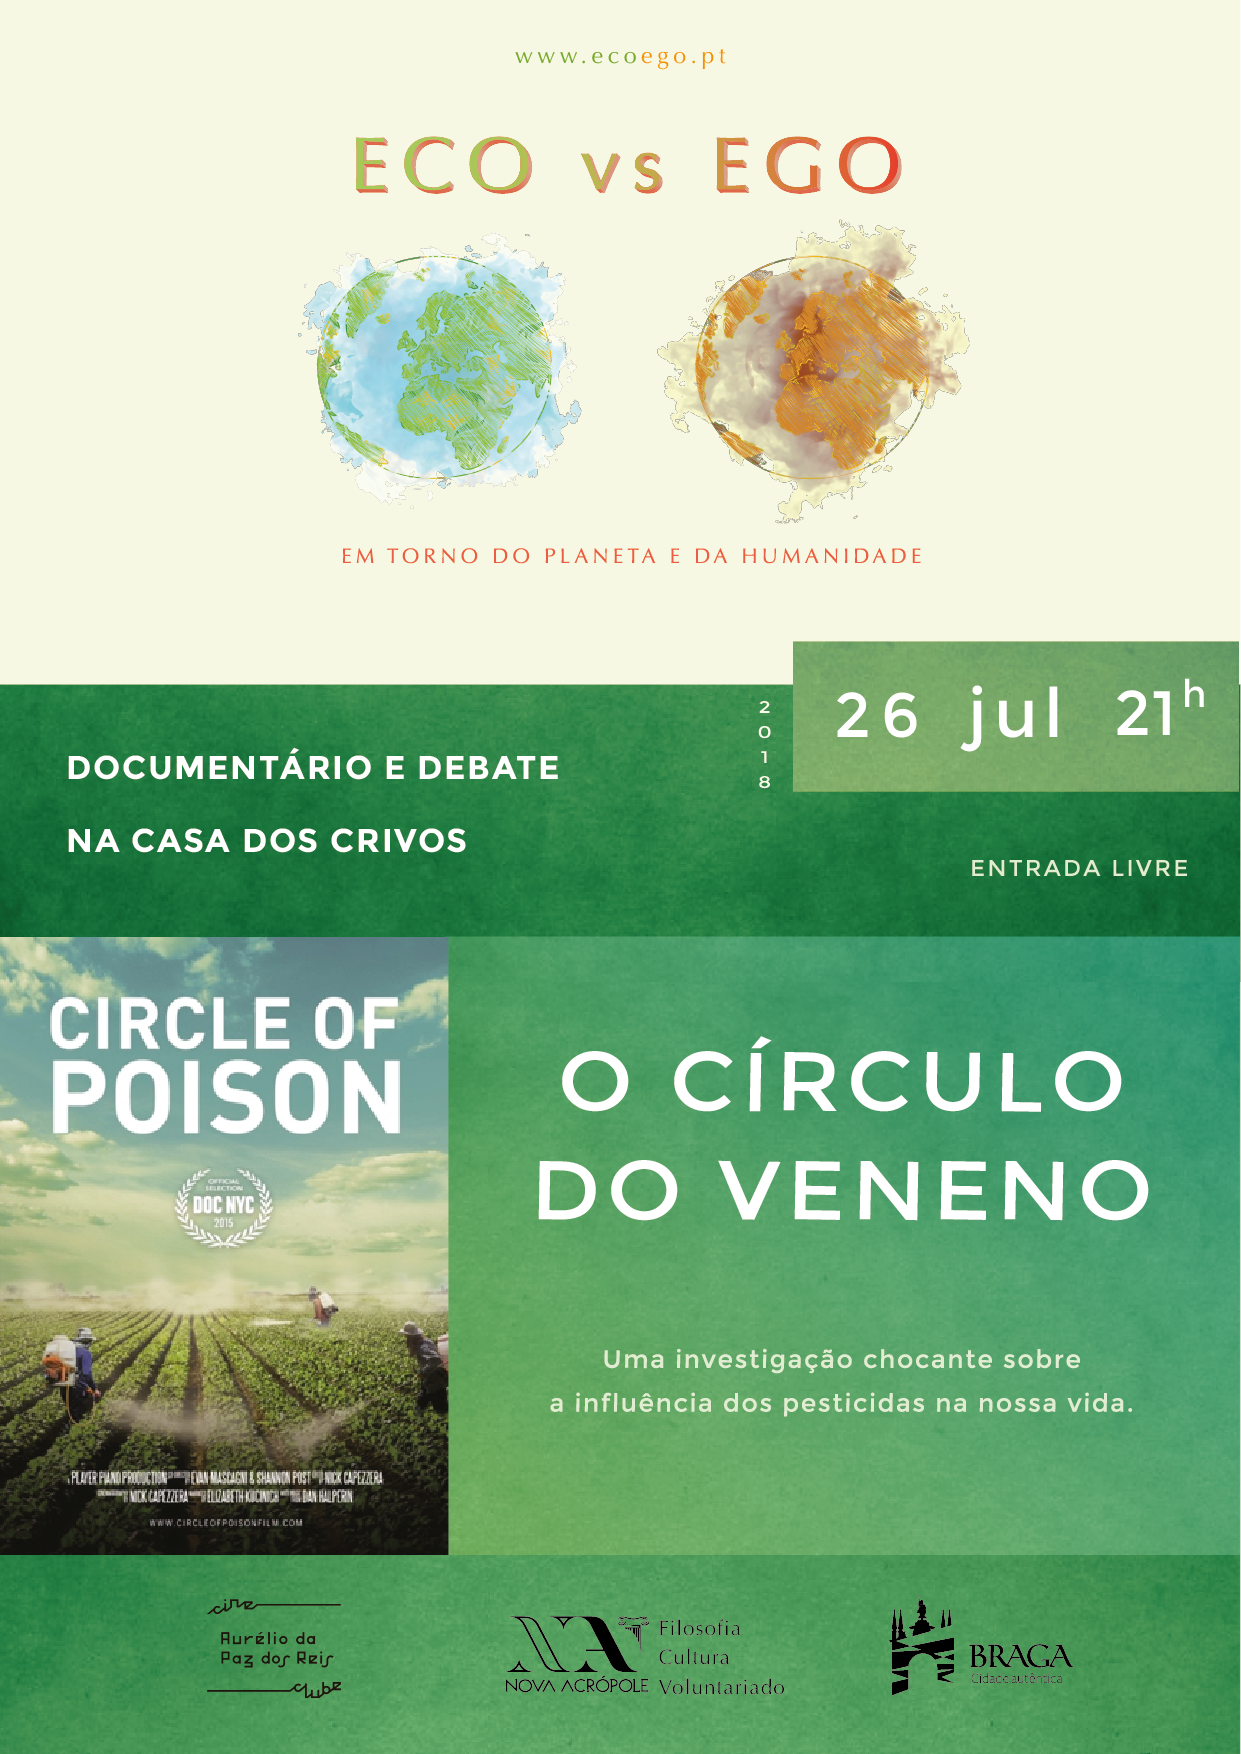 Eco vs Ego - Círculo do Veneno-01.png